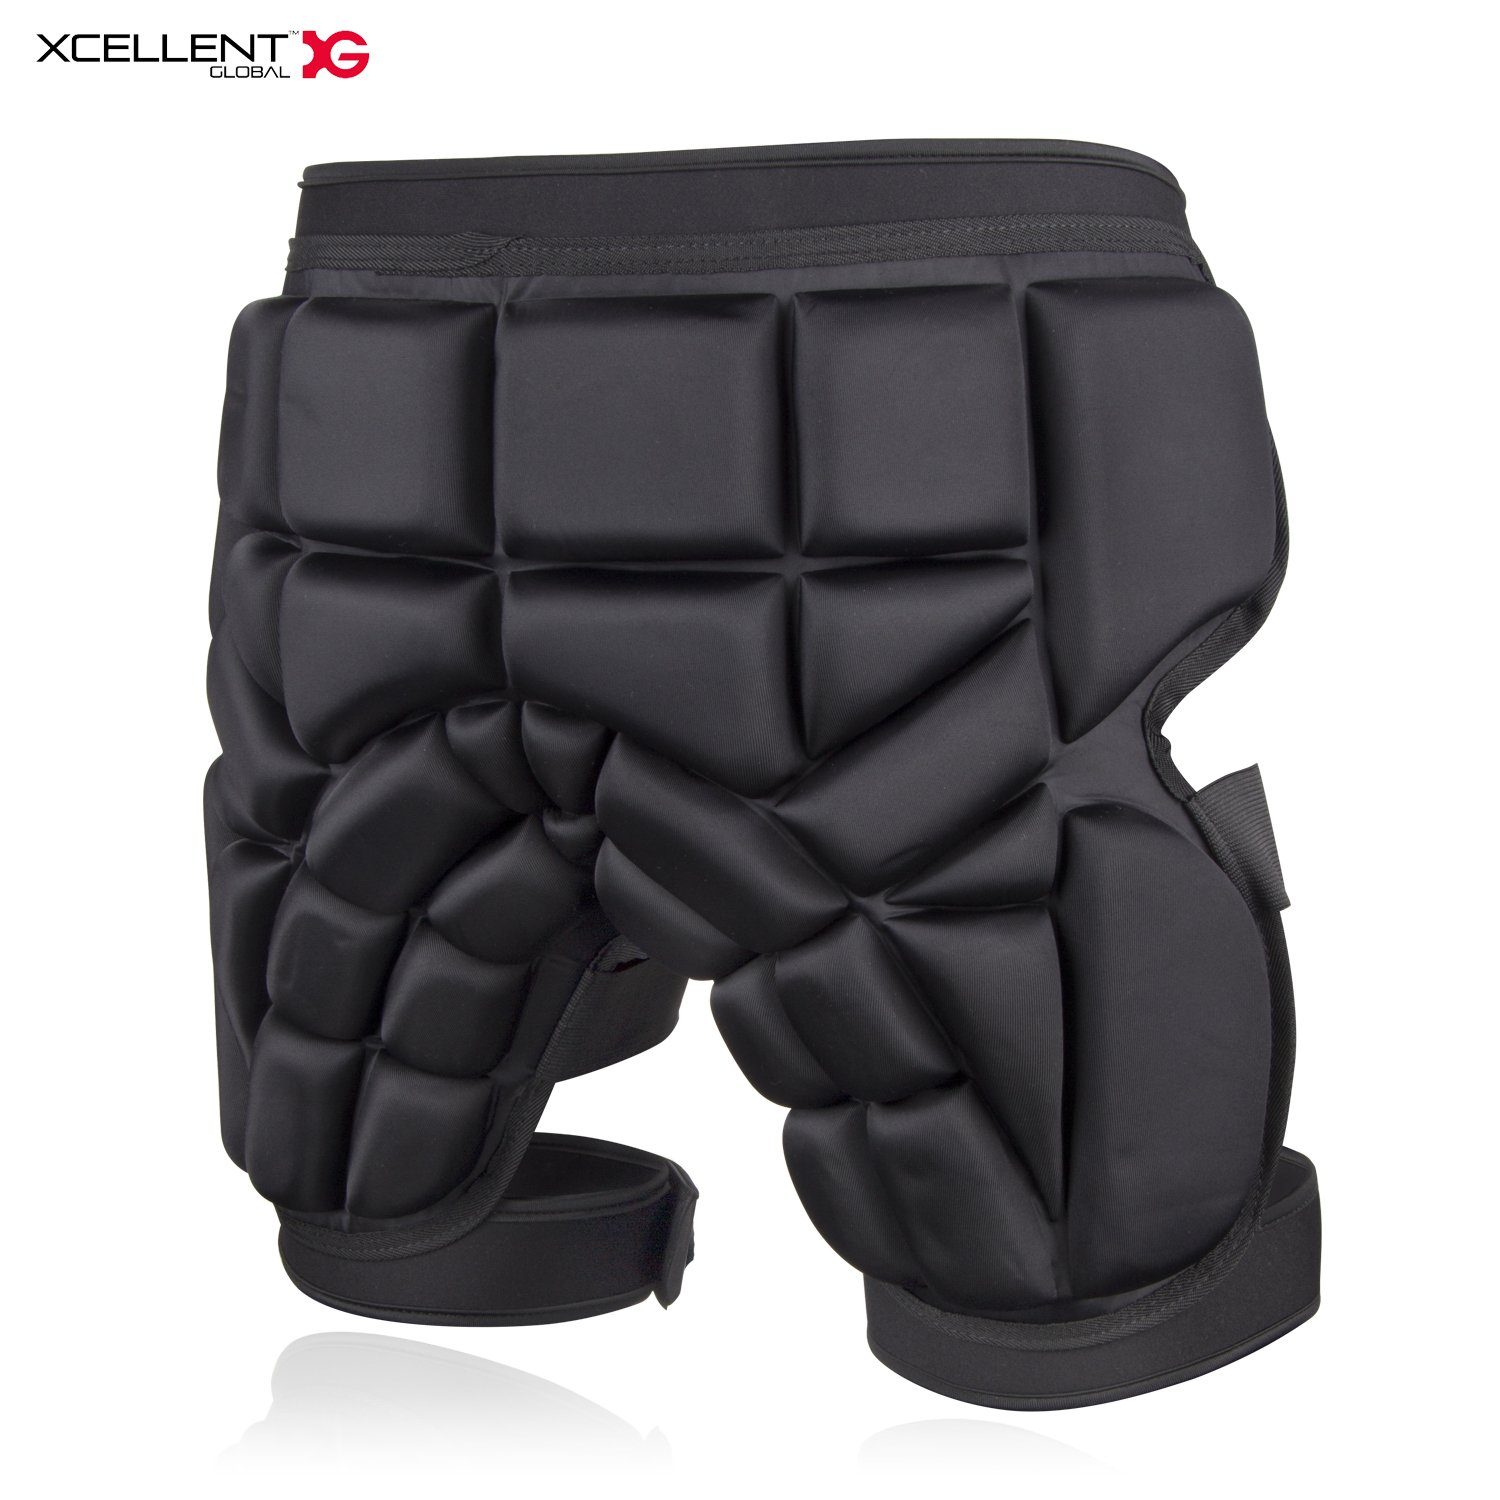 Xcellent Global 3D Protection Hip Padded Shorts Adjustable Unisex Protective Gear for Multisport Skiing, Skating, Snowboarding, Hockey, Riding HG251